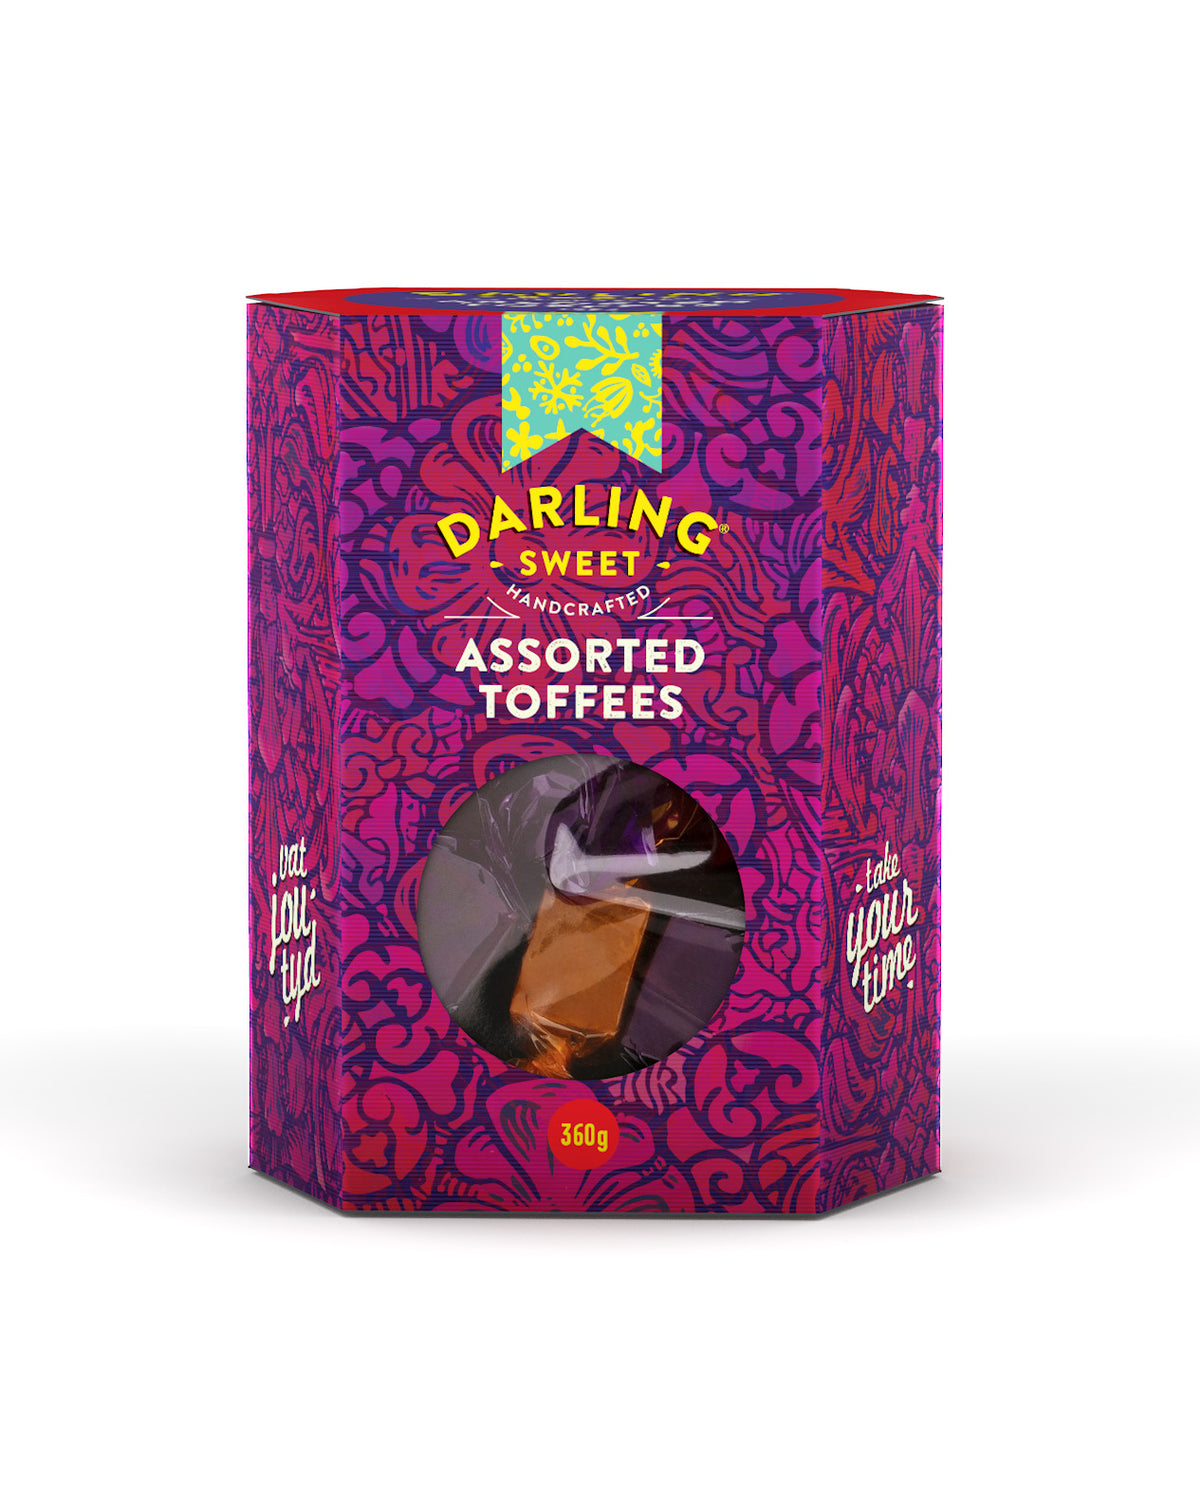 360g Assorted Toffees